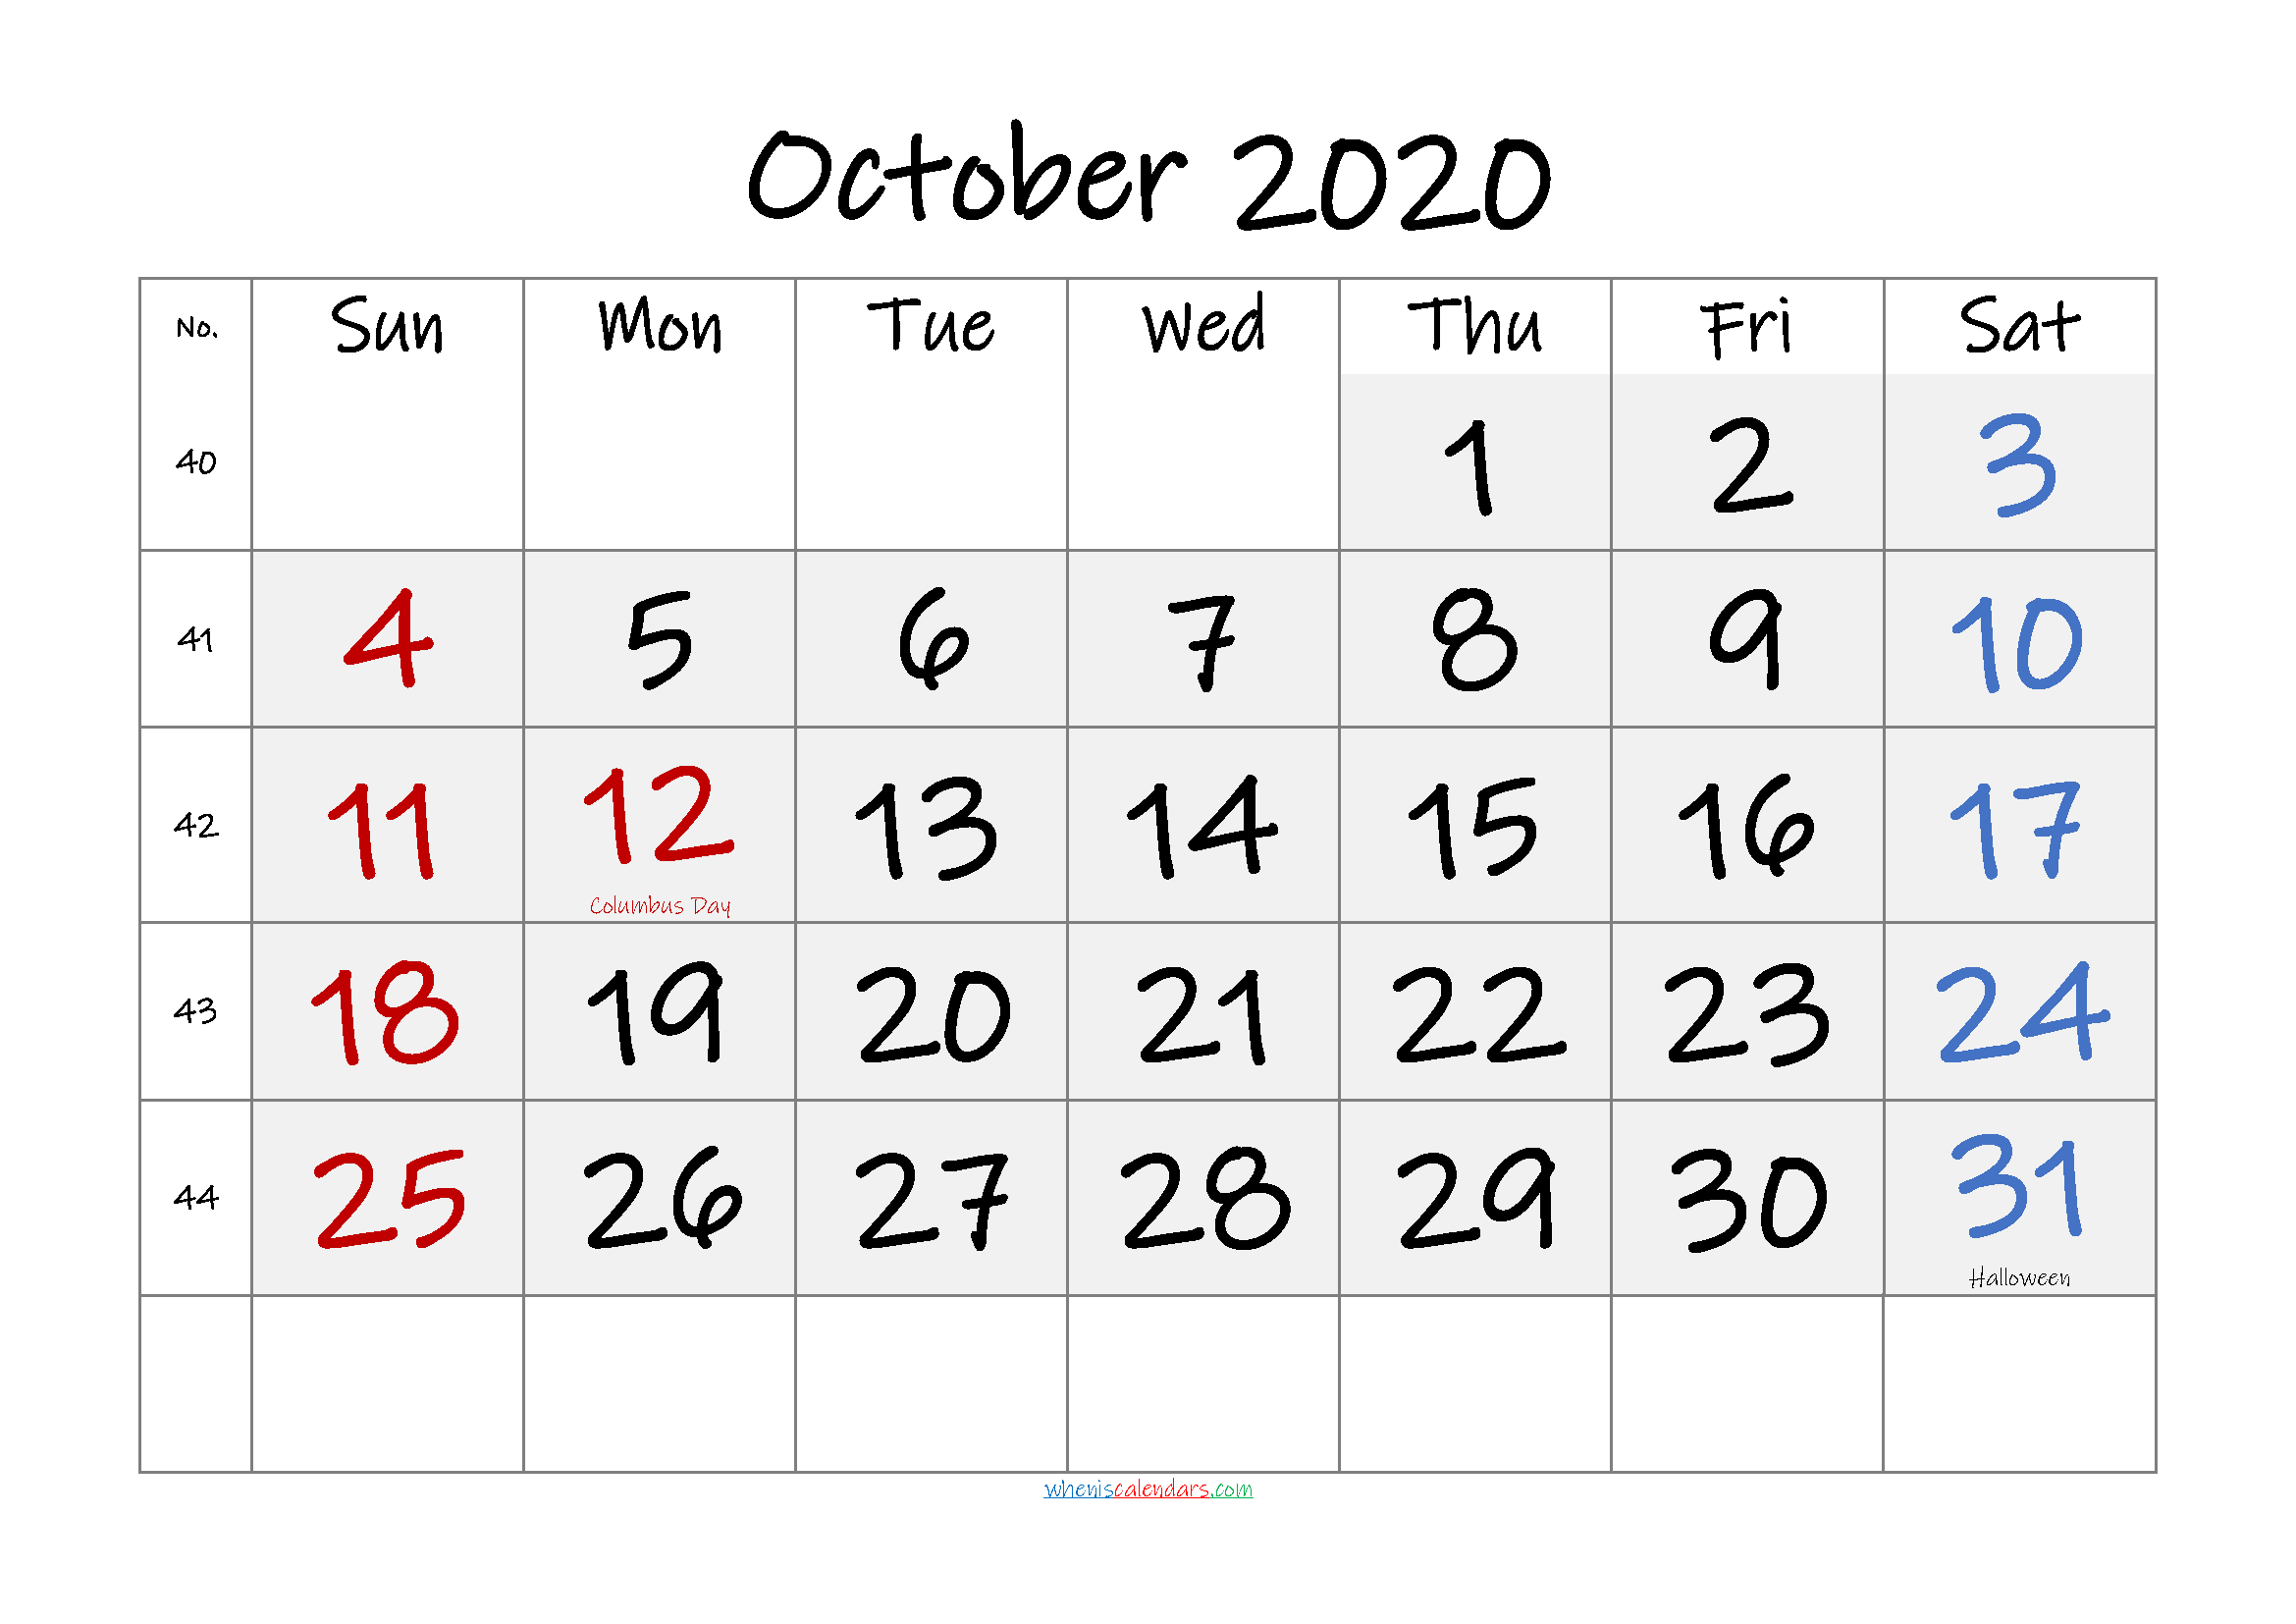 Free Printable OCTOBER 2020 Calendar with Holidays